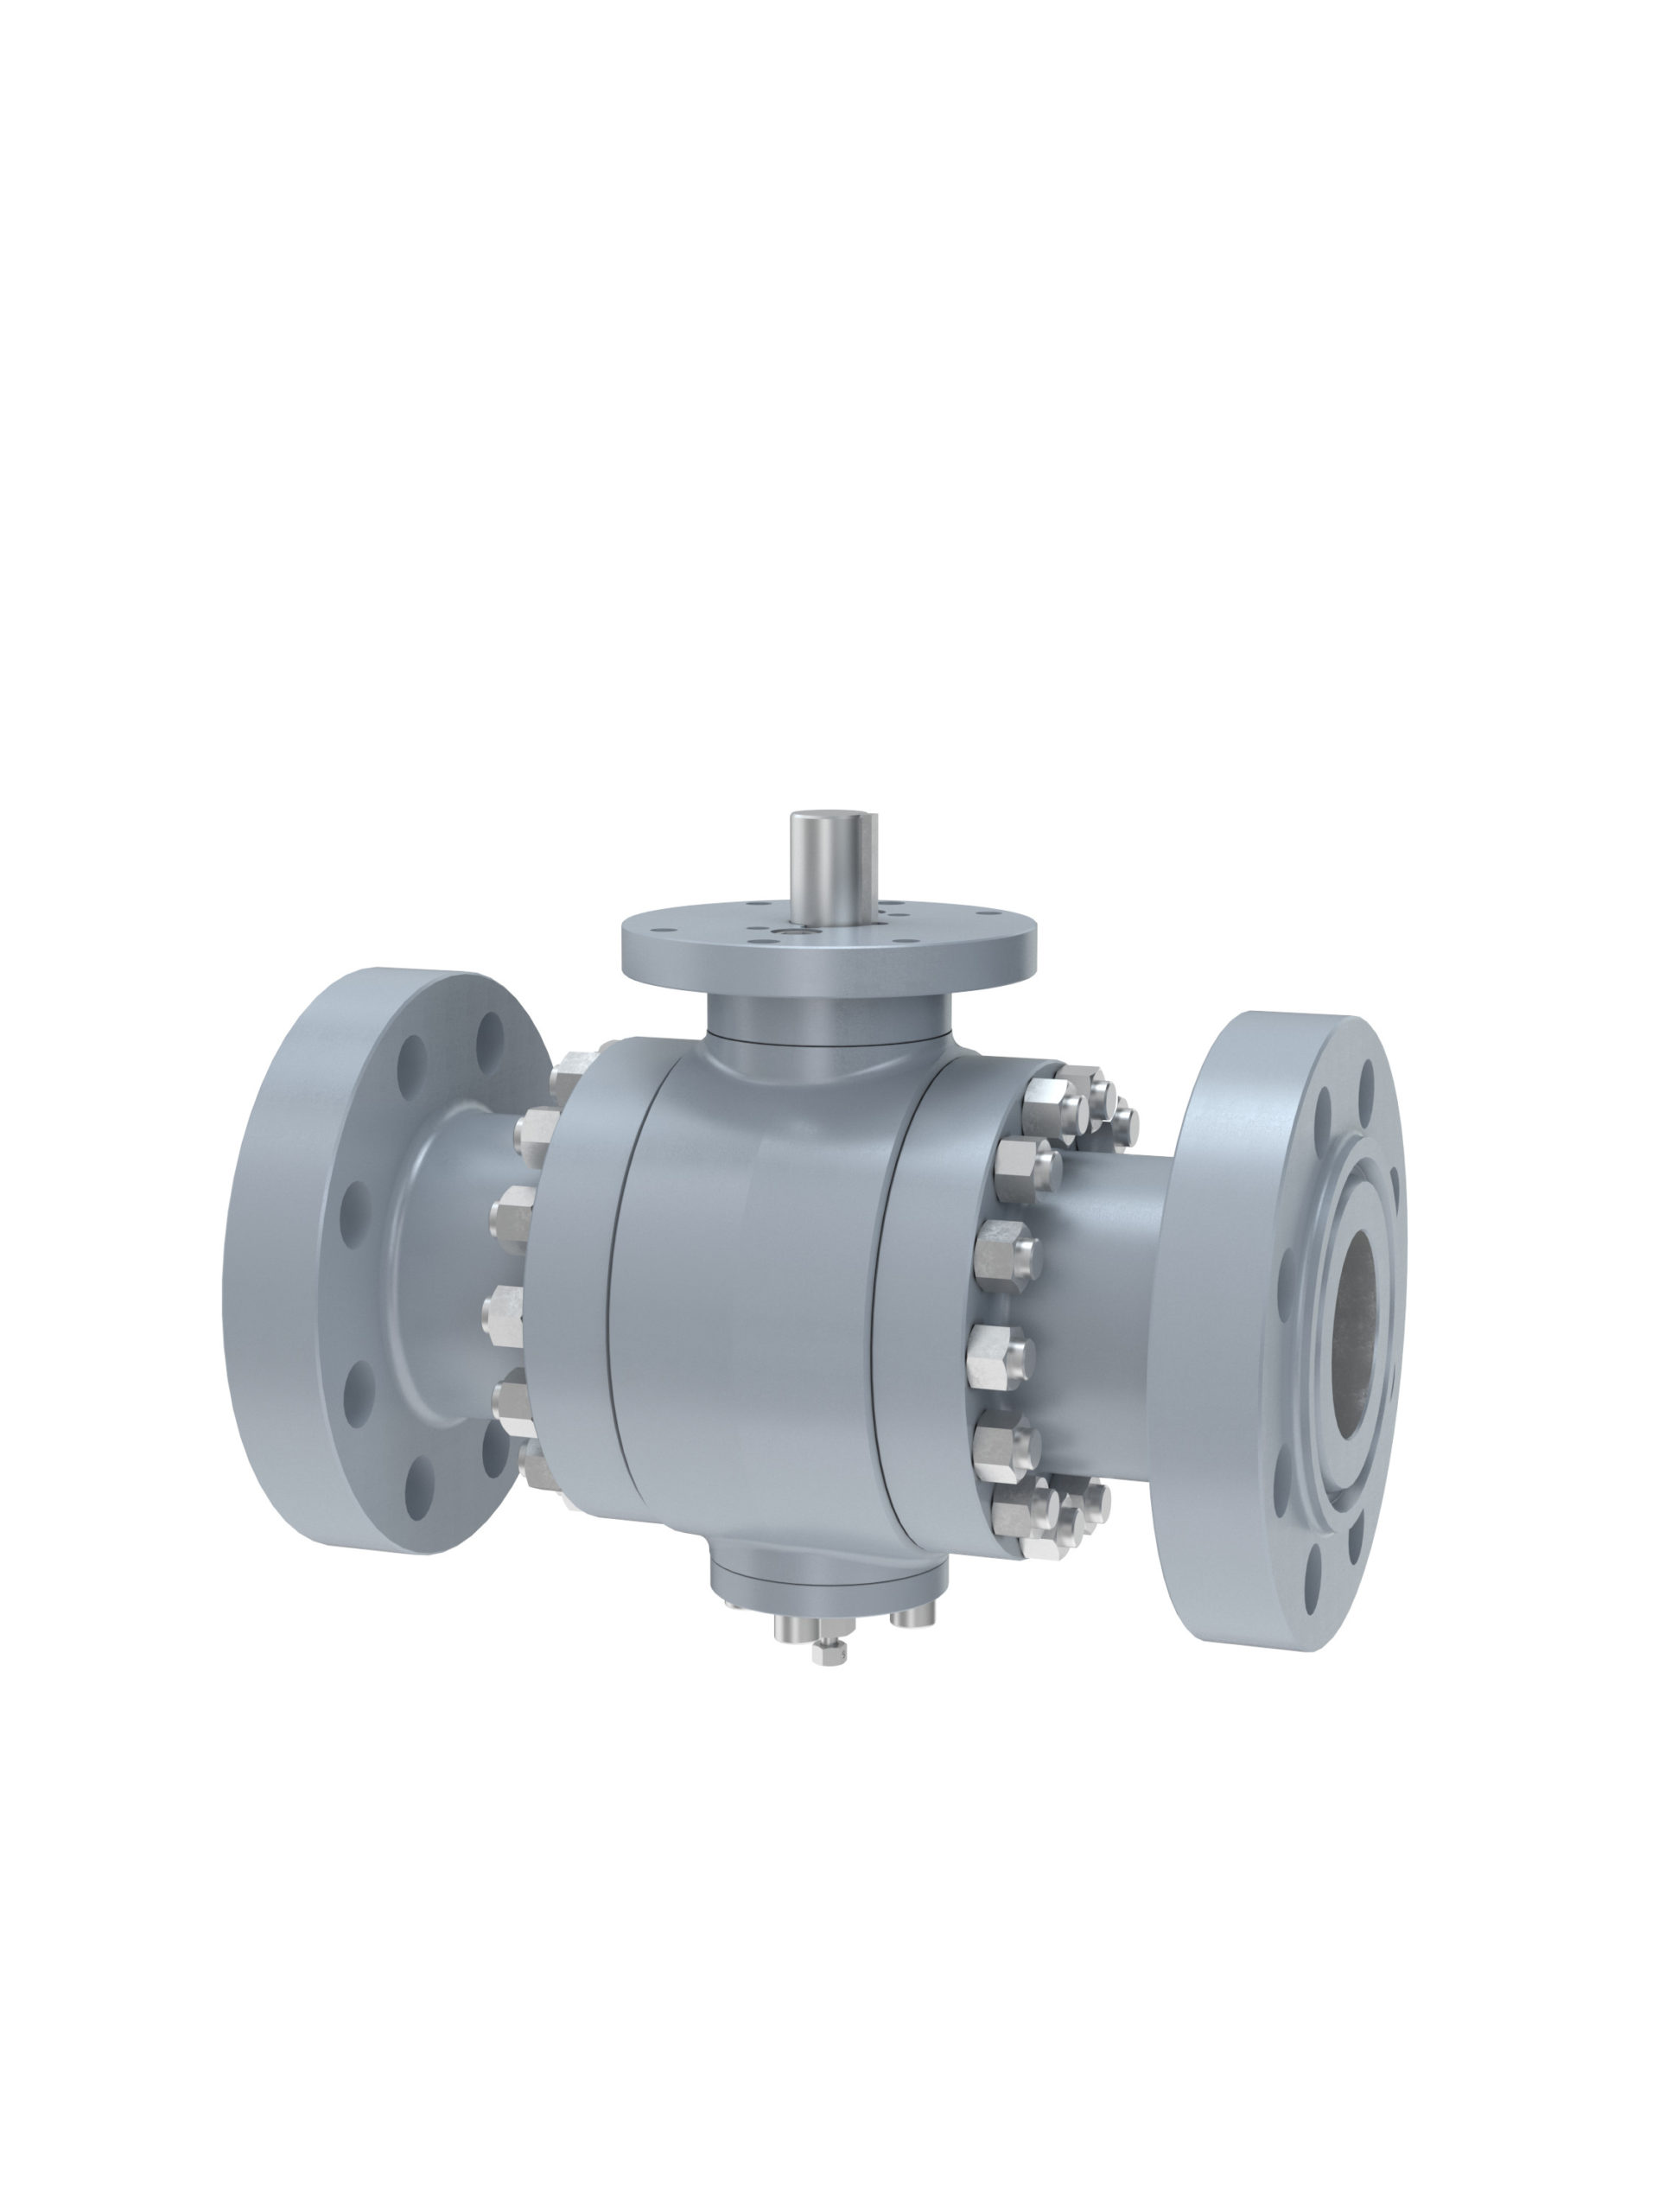 Original Image: Grove B4C Ball Valve